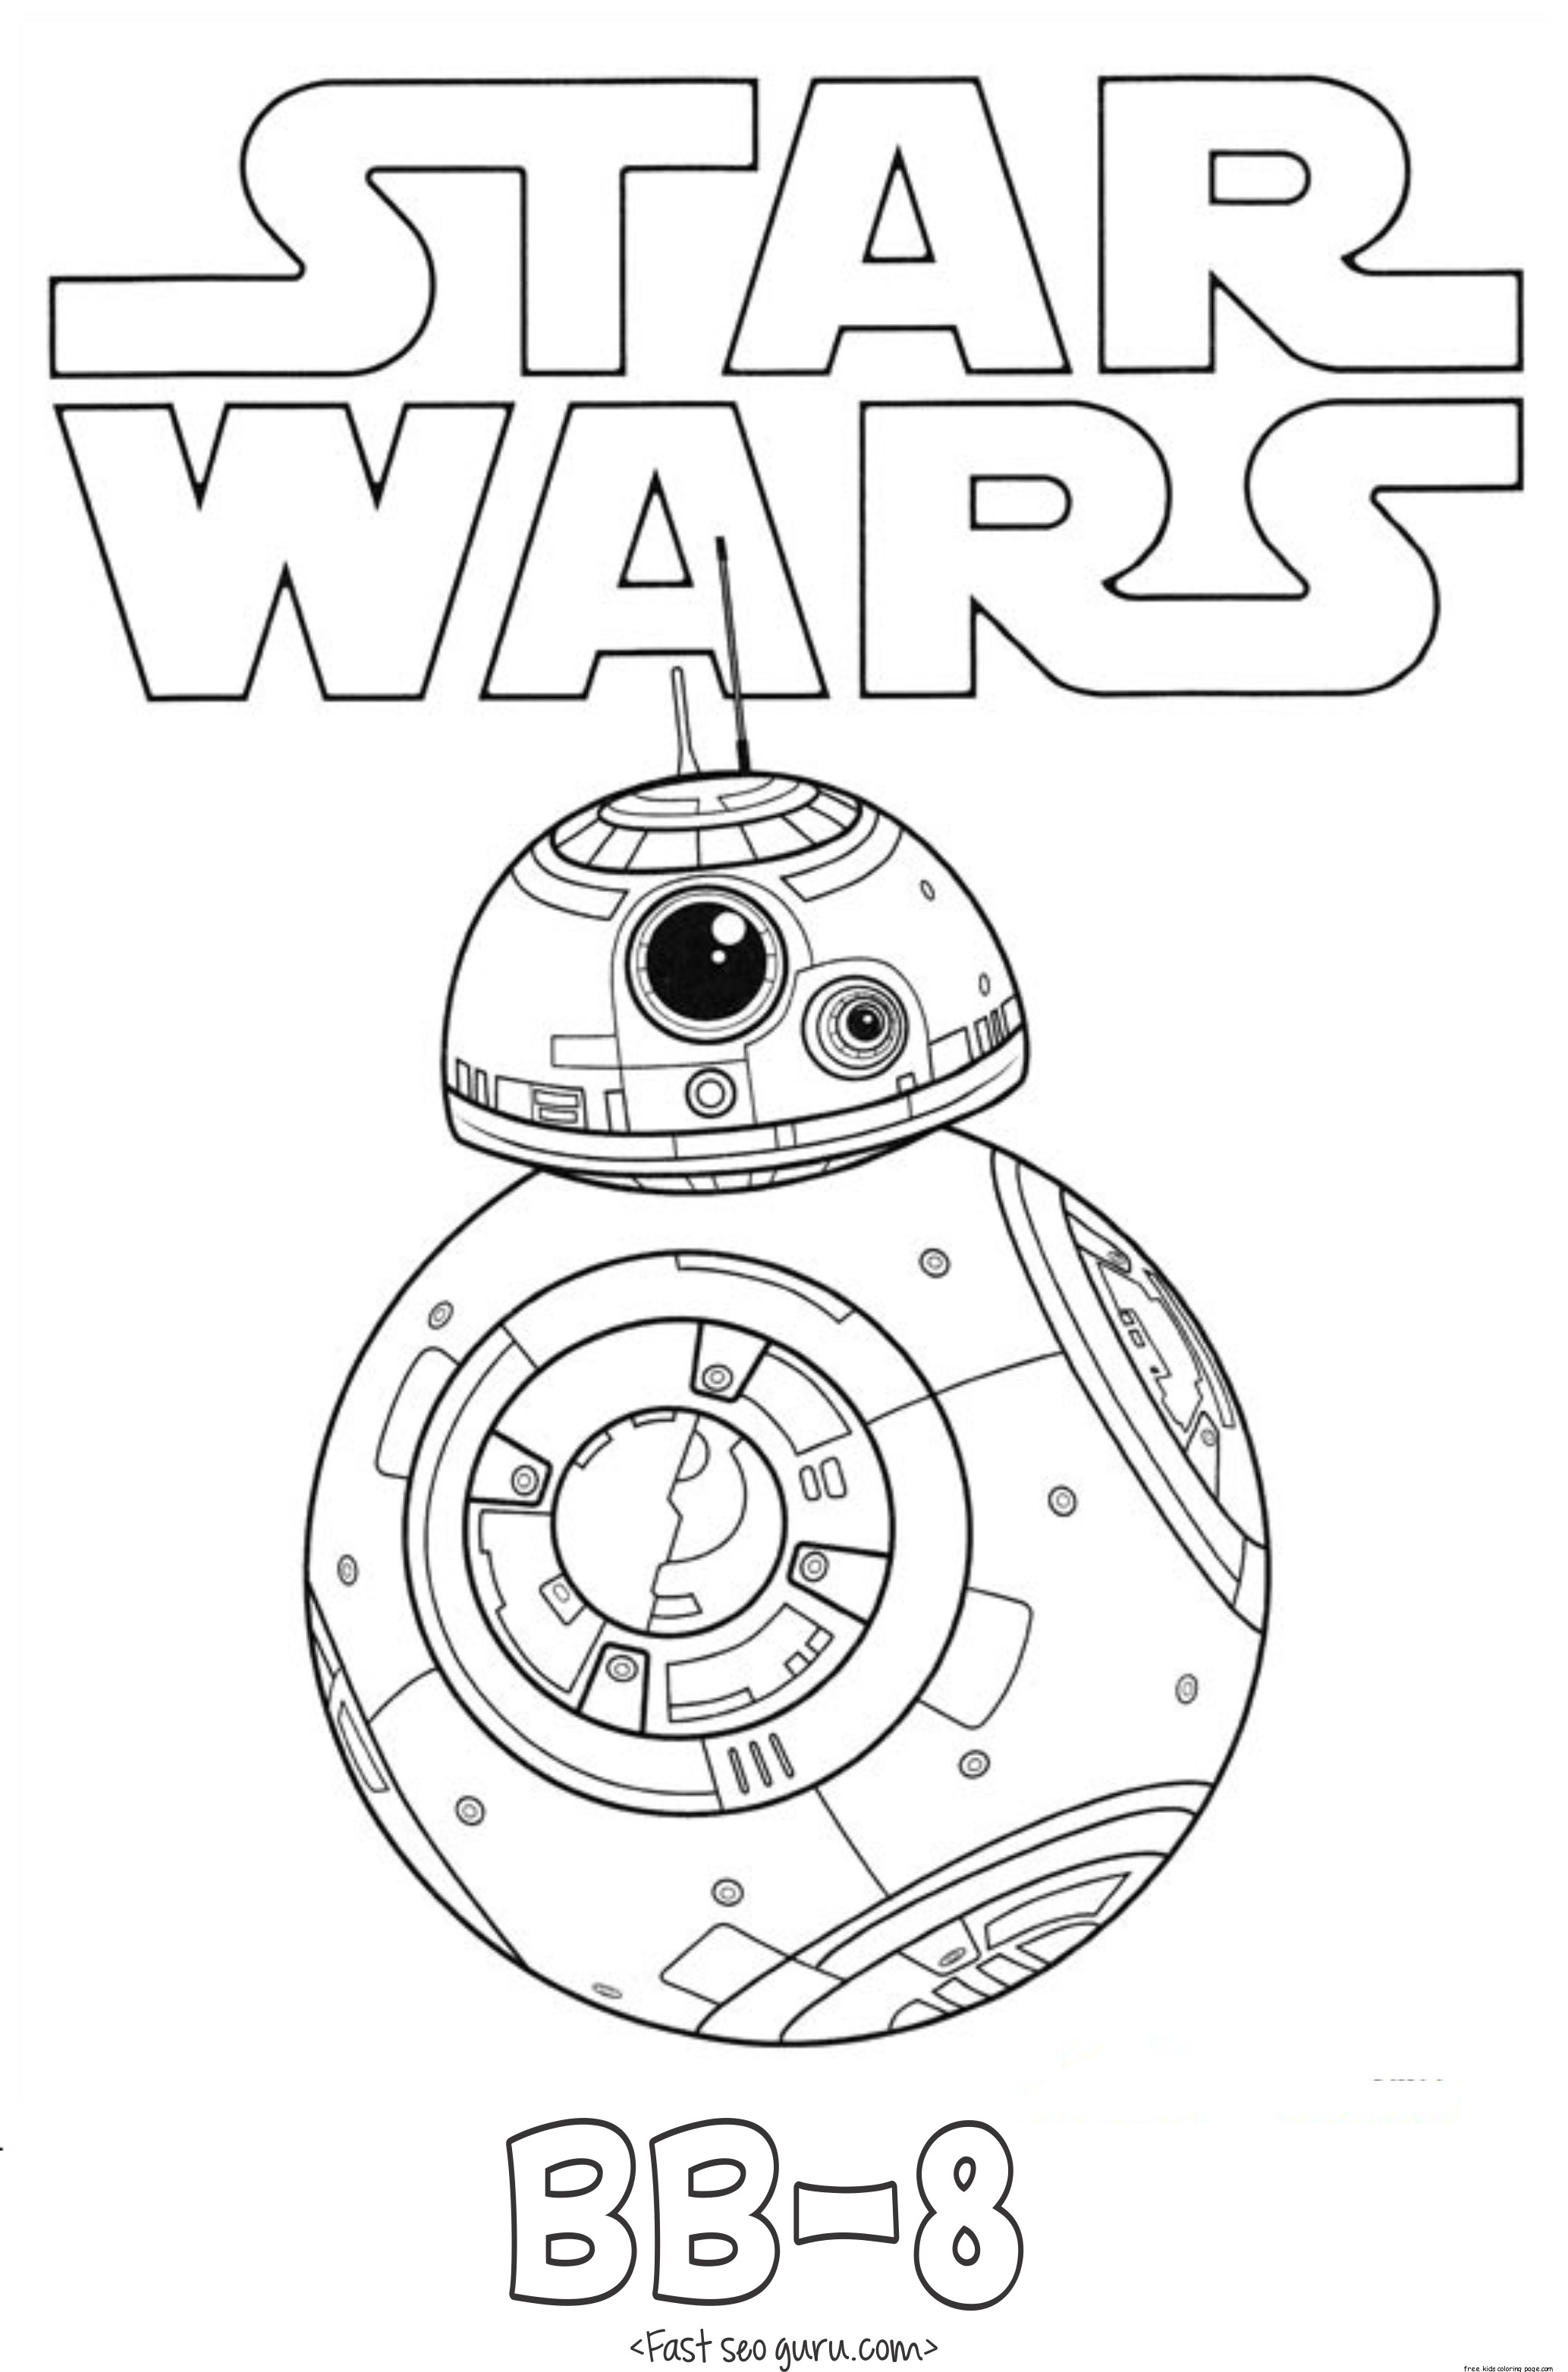 star wars print out coloring pages star wars printable coloring pages hubpages coloring out print wars pages star